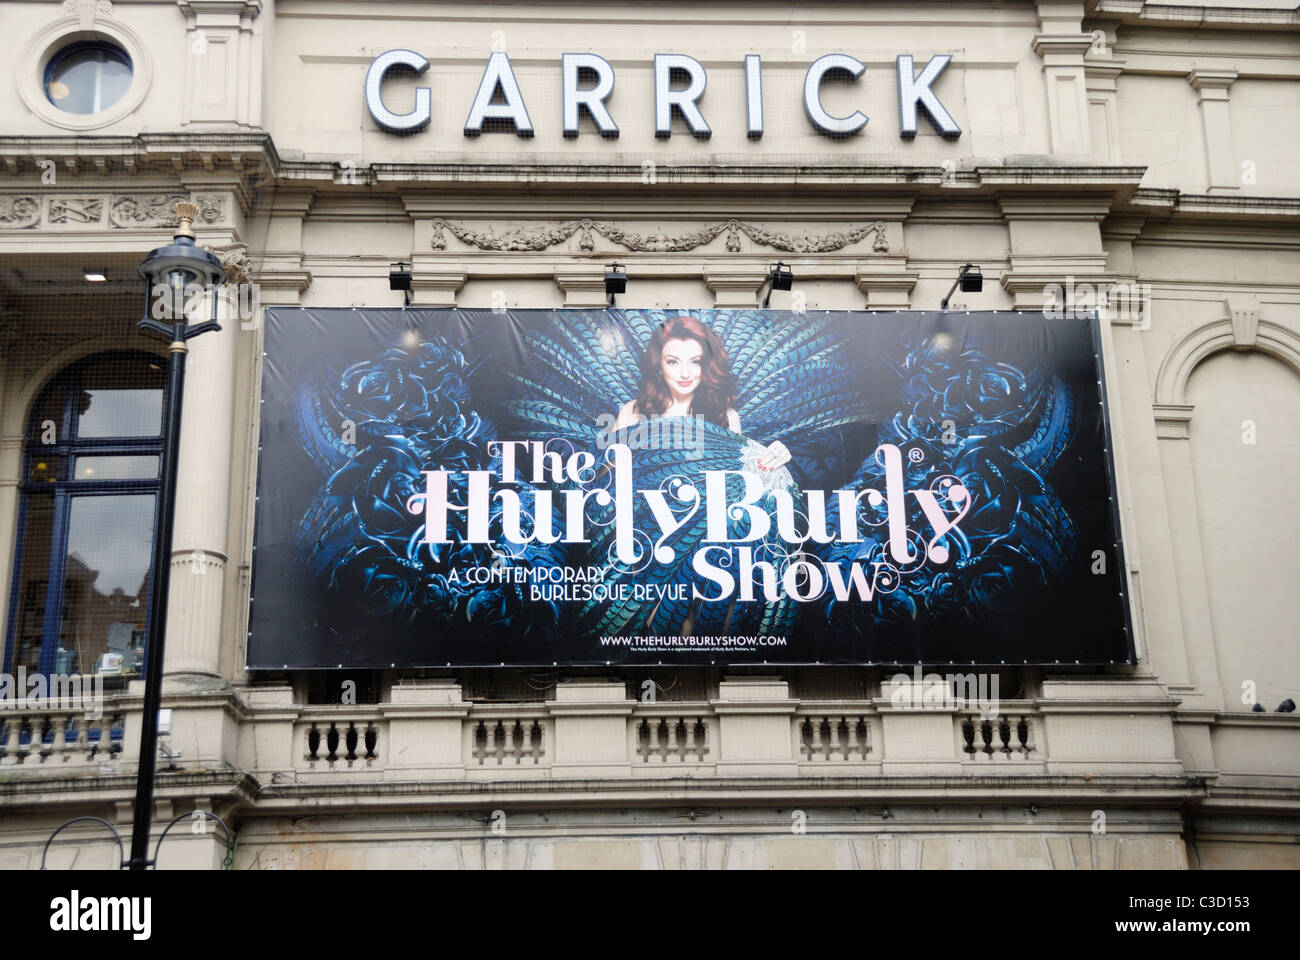 Billboard promoting the Hurly Burly Show, burlesque-inspired revue, London, England - Stock Image